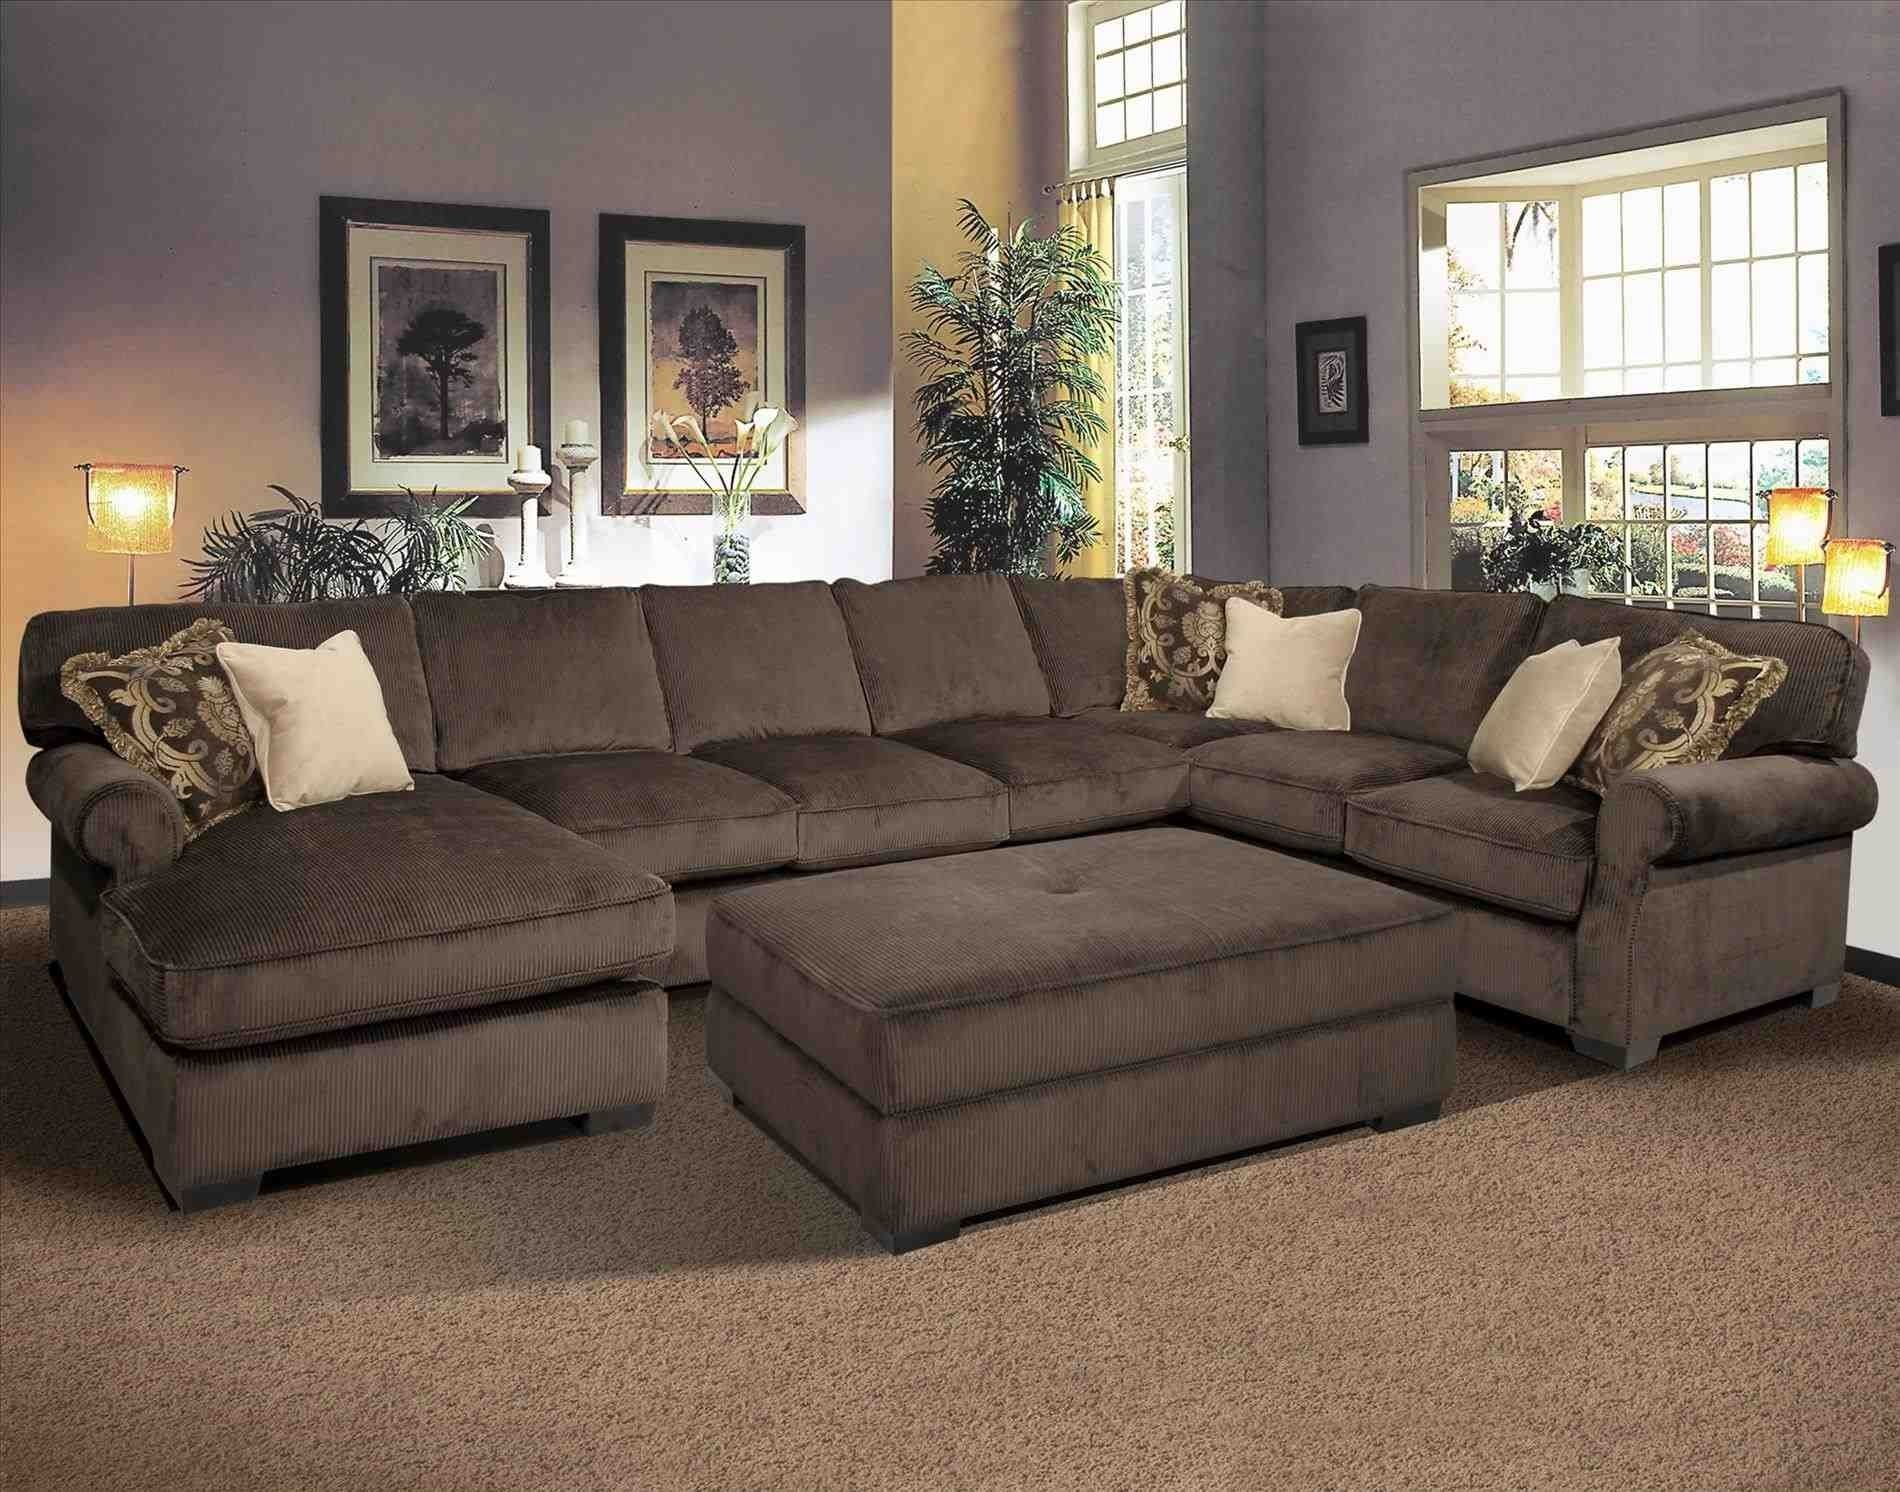 Victoria Bc Sectional Sofas Home Decor Home Furnishings Home